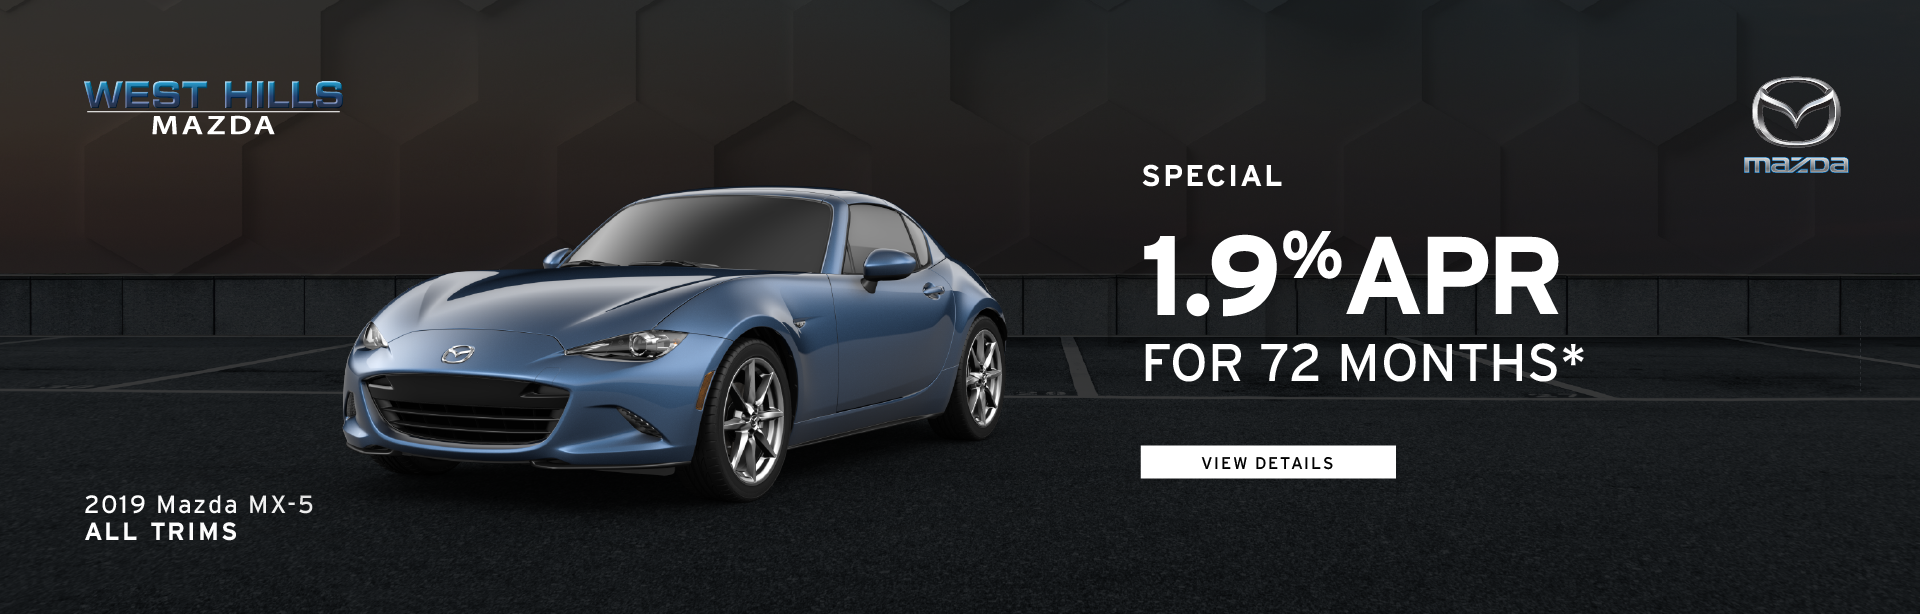 2019 Mazda MX-5 All Trims    .9% APR for 72 mos.* *Valid on any new 2019 Mazda MX-5 All Trims. .9% APR for 72 mos. Subject to credit approval through participating lender – not all will qualify. Down payment and other factors may affect qualification. MSRP starting at $33,265. 72 months at $17.53 per month per $1000 financed with $0 down. Excludes taxes, tags, registration and title, insurance and dealer charges. A negotiable dealer documentary service fee of up to $150 may be added to the sale price or capitalized cost. Offer Expires: 9/3/2019.